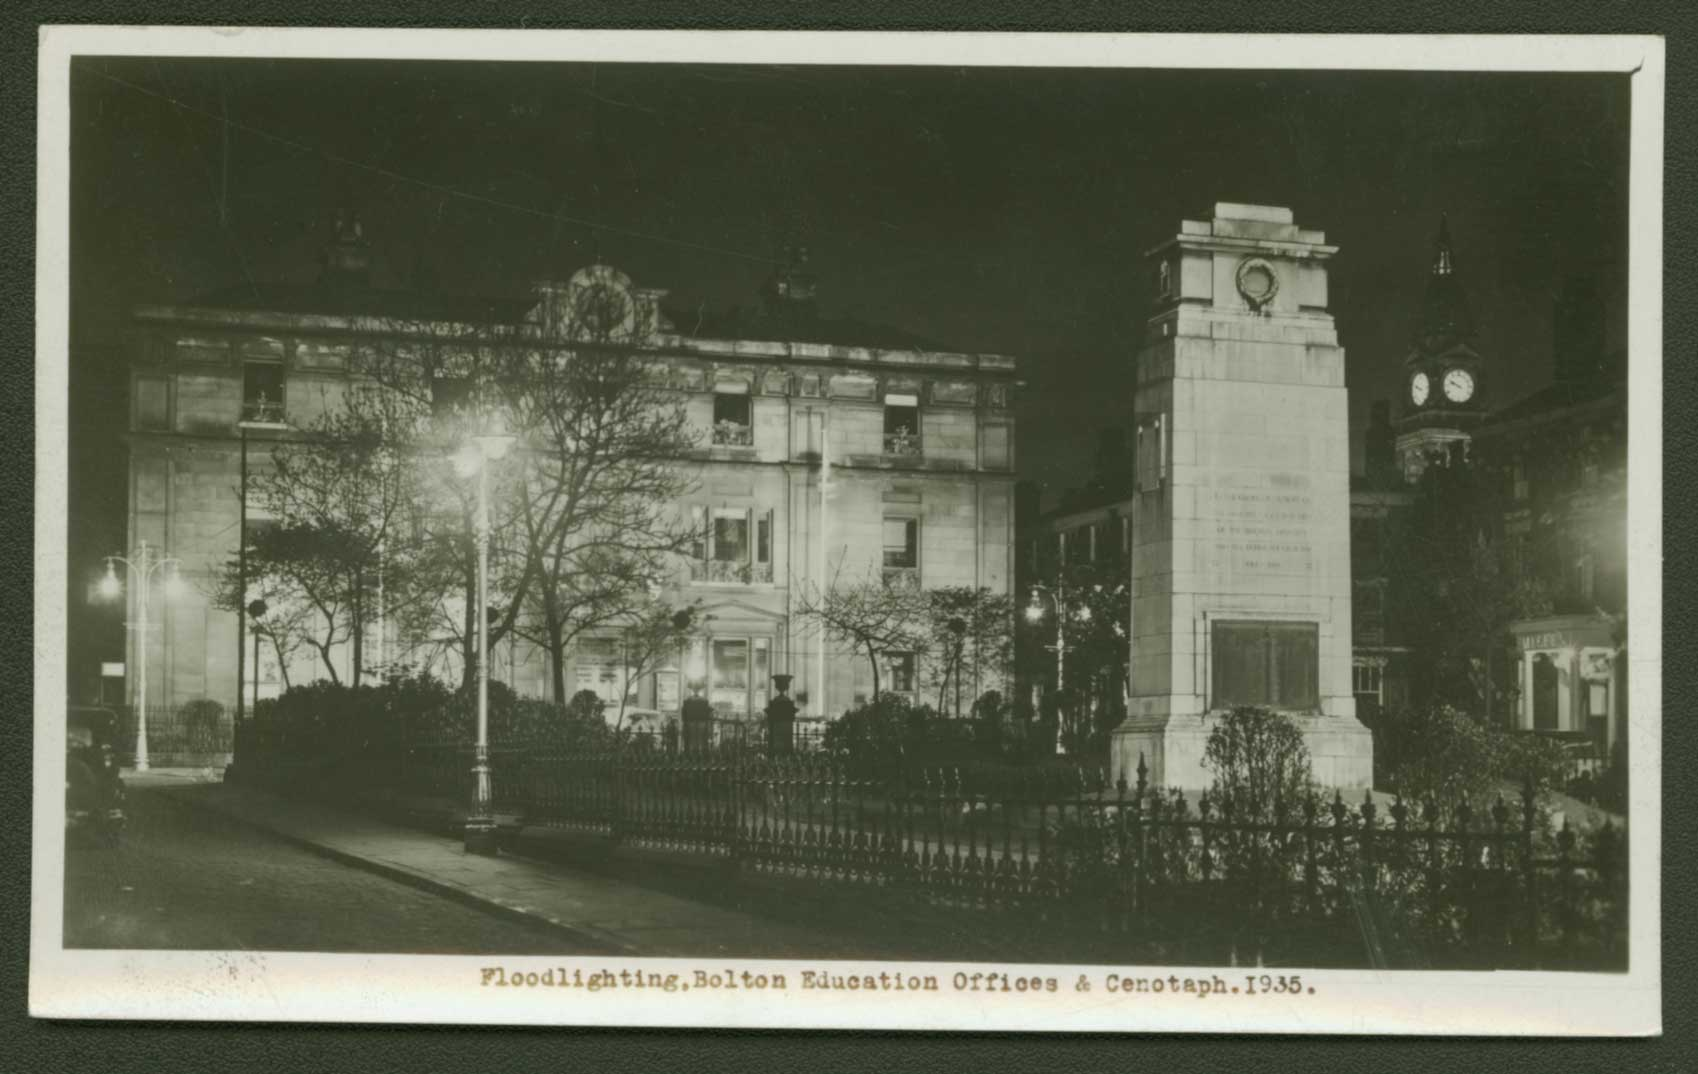 Floodlighting. Bolton Education Offices and Cenotaph. 1935.